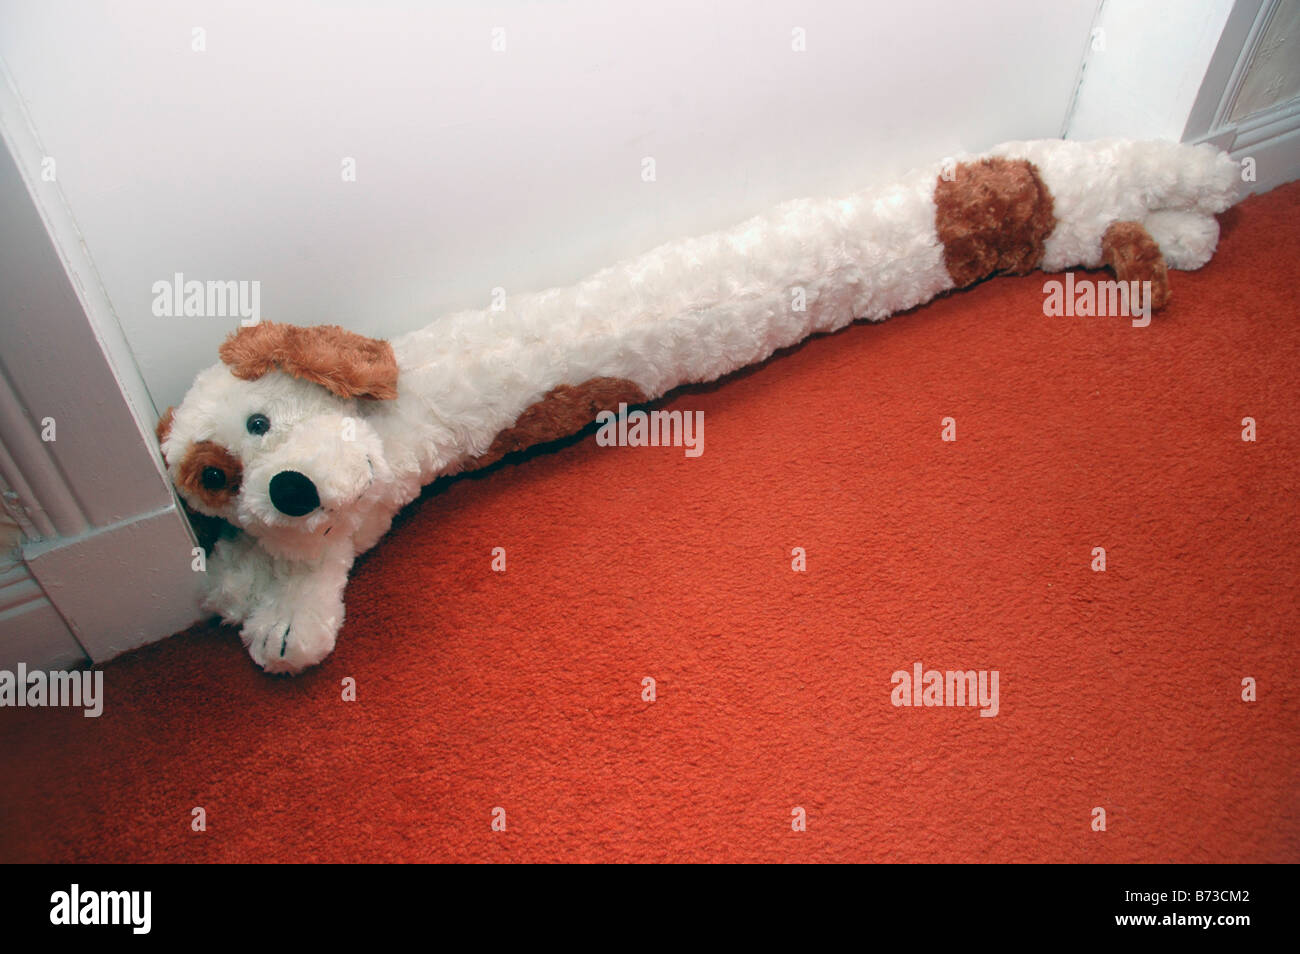 A dog shaped draft excluder lies at the base of a door. - Stock Image